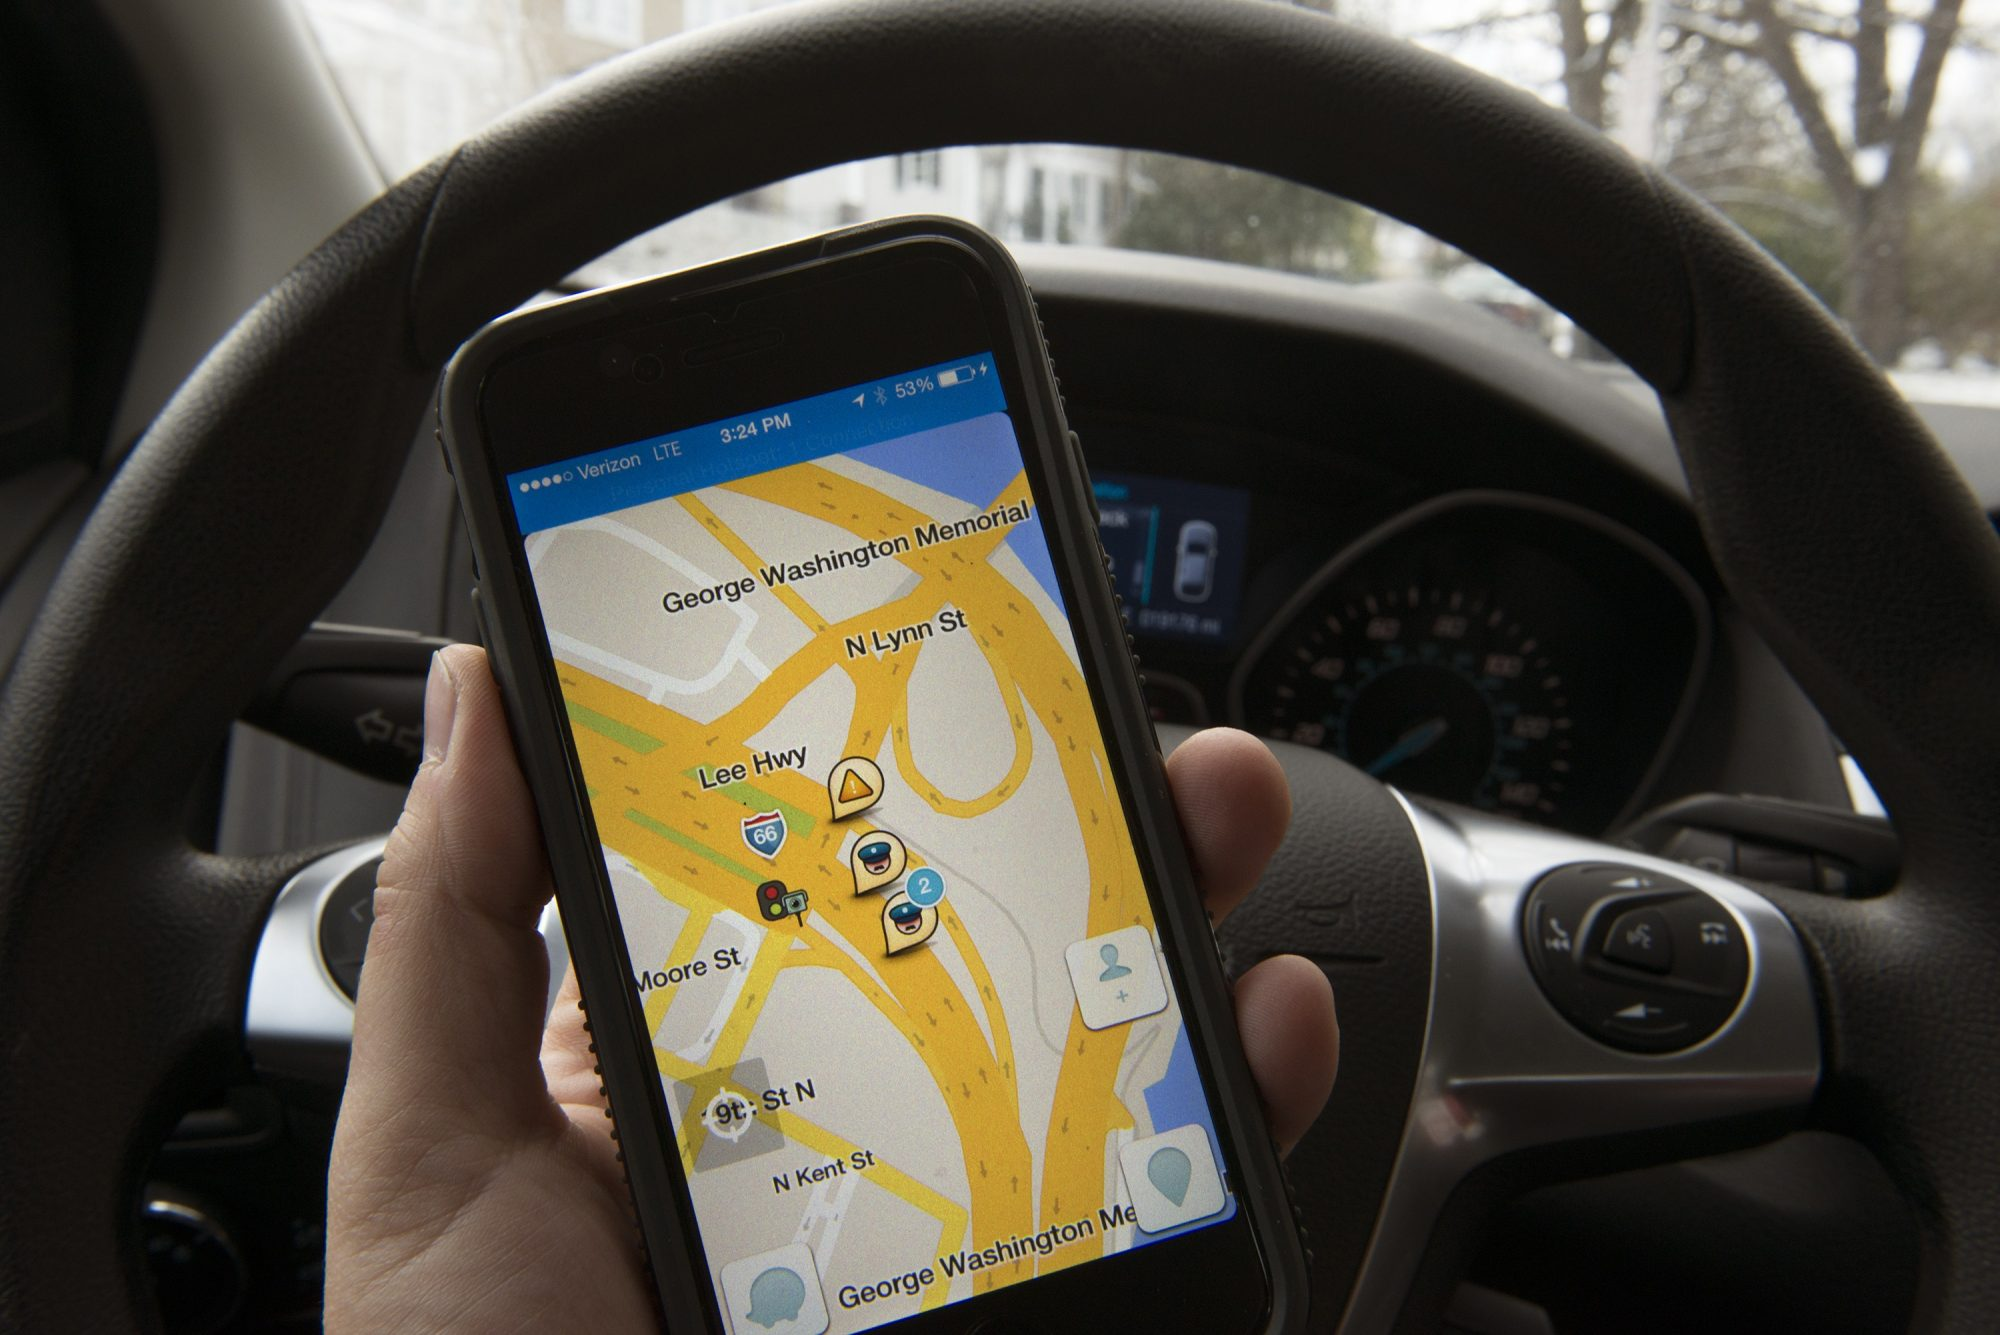 Law Enforcement Officials Unhappy With WAZE GPS Appp